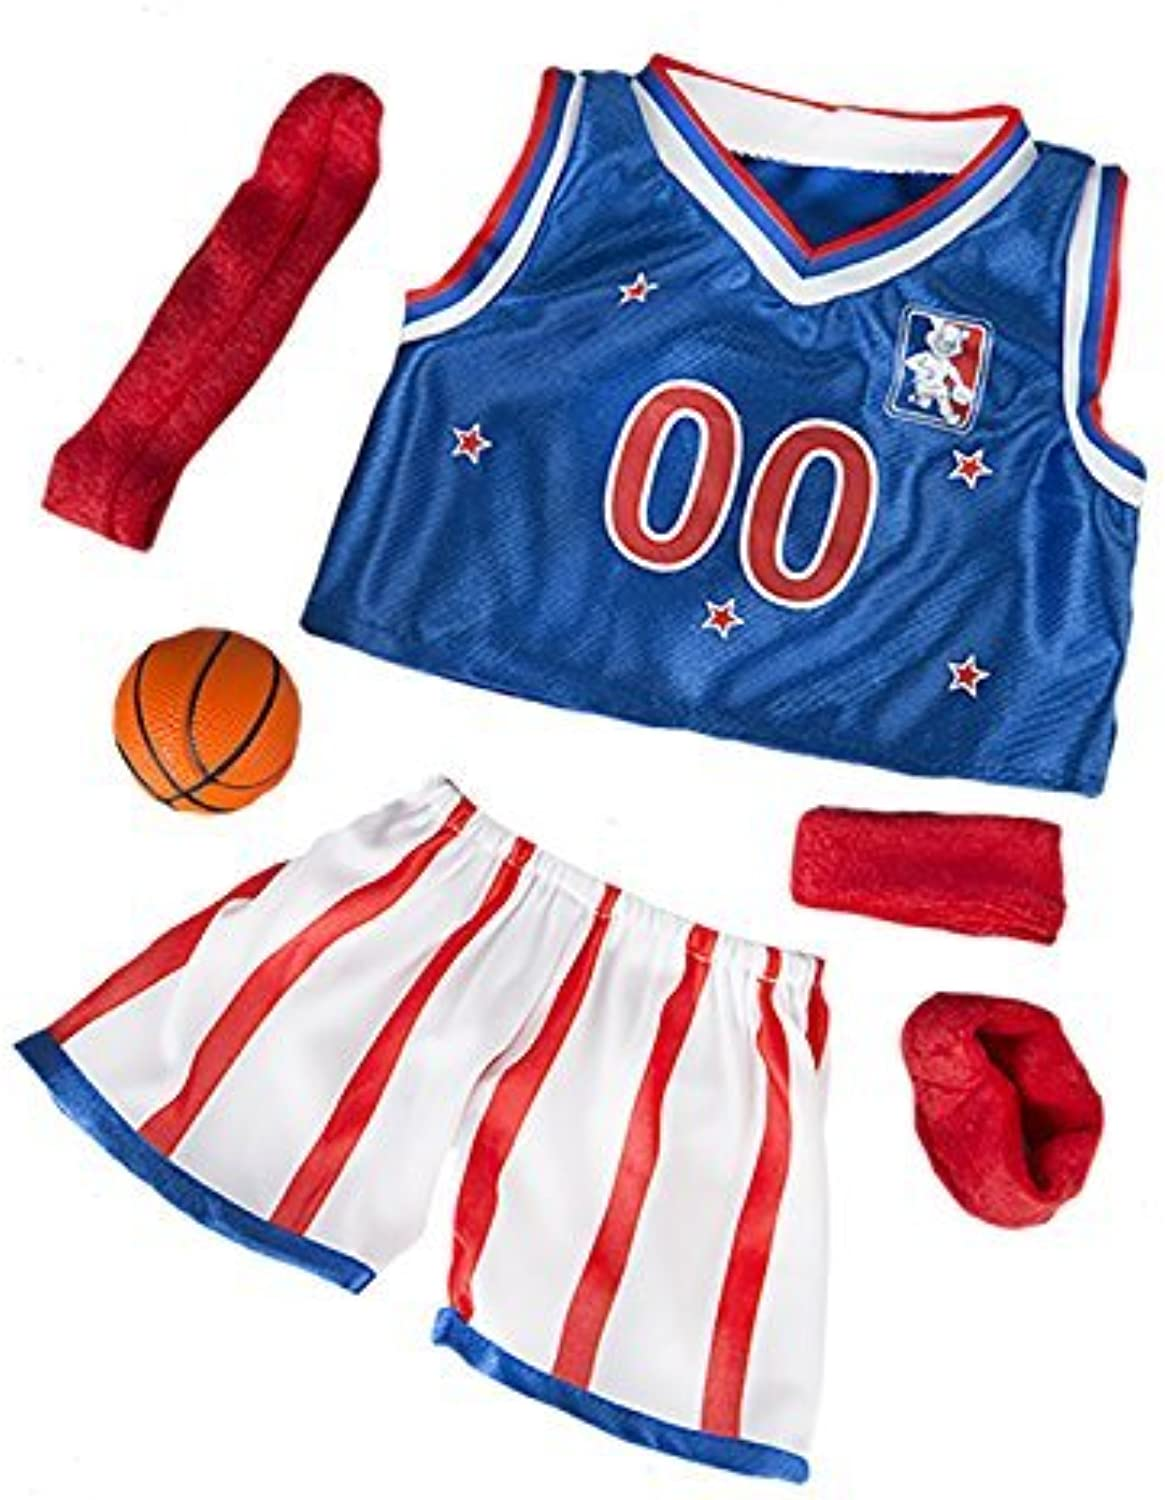 All Star Basketball Uniform Fits Most 14  18 Buildabear, Vermont Teddy Bears, and Make Your Own Stuffed Animals by Stuffems Toy Shop